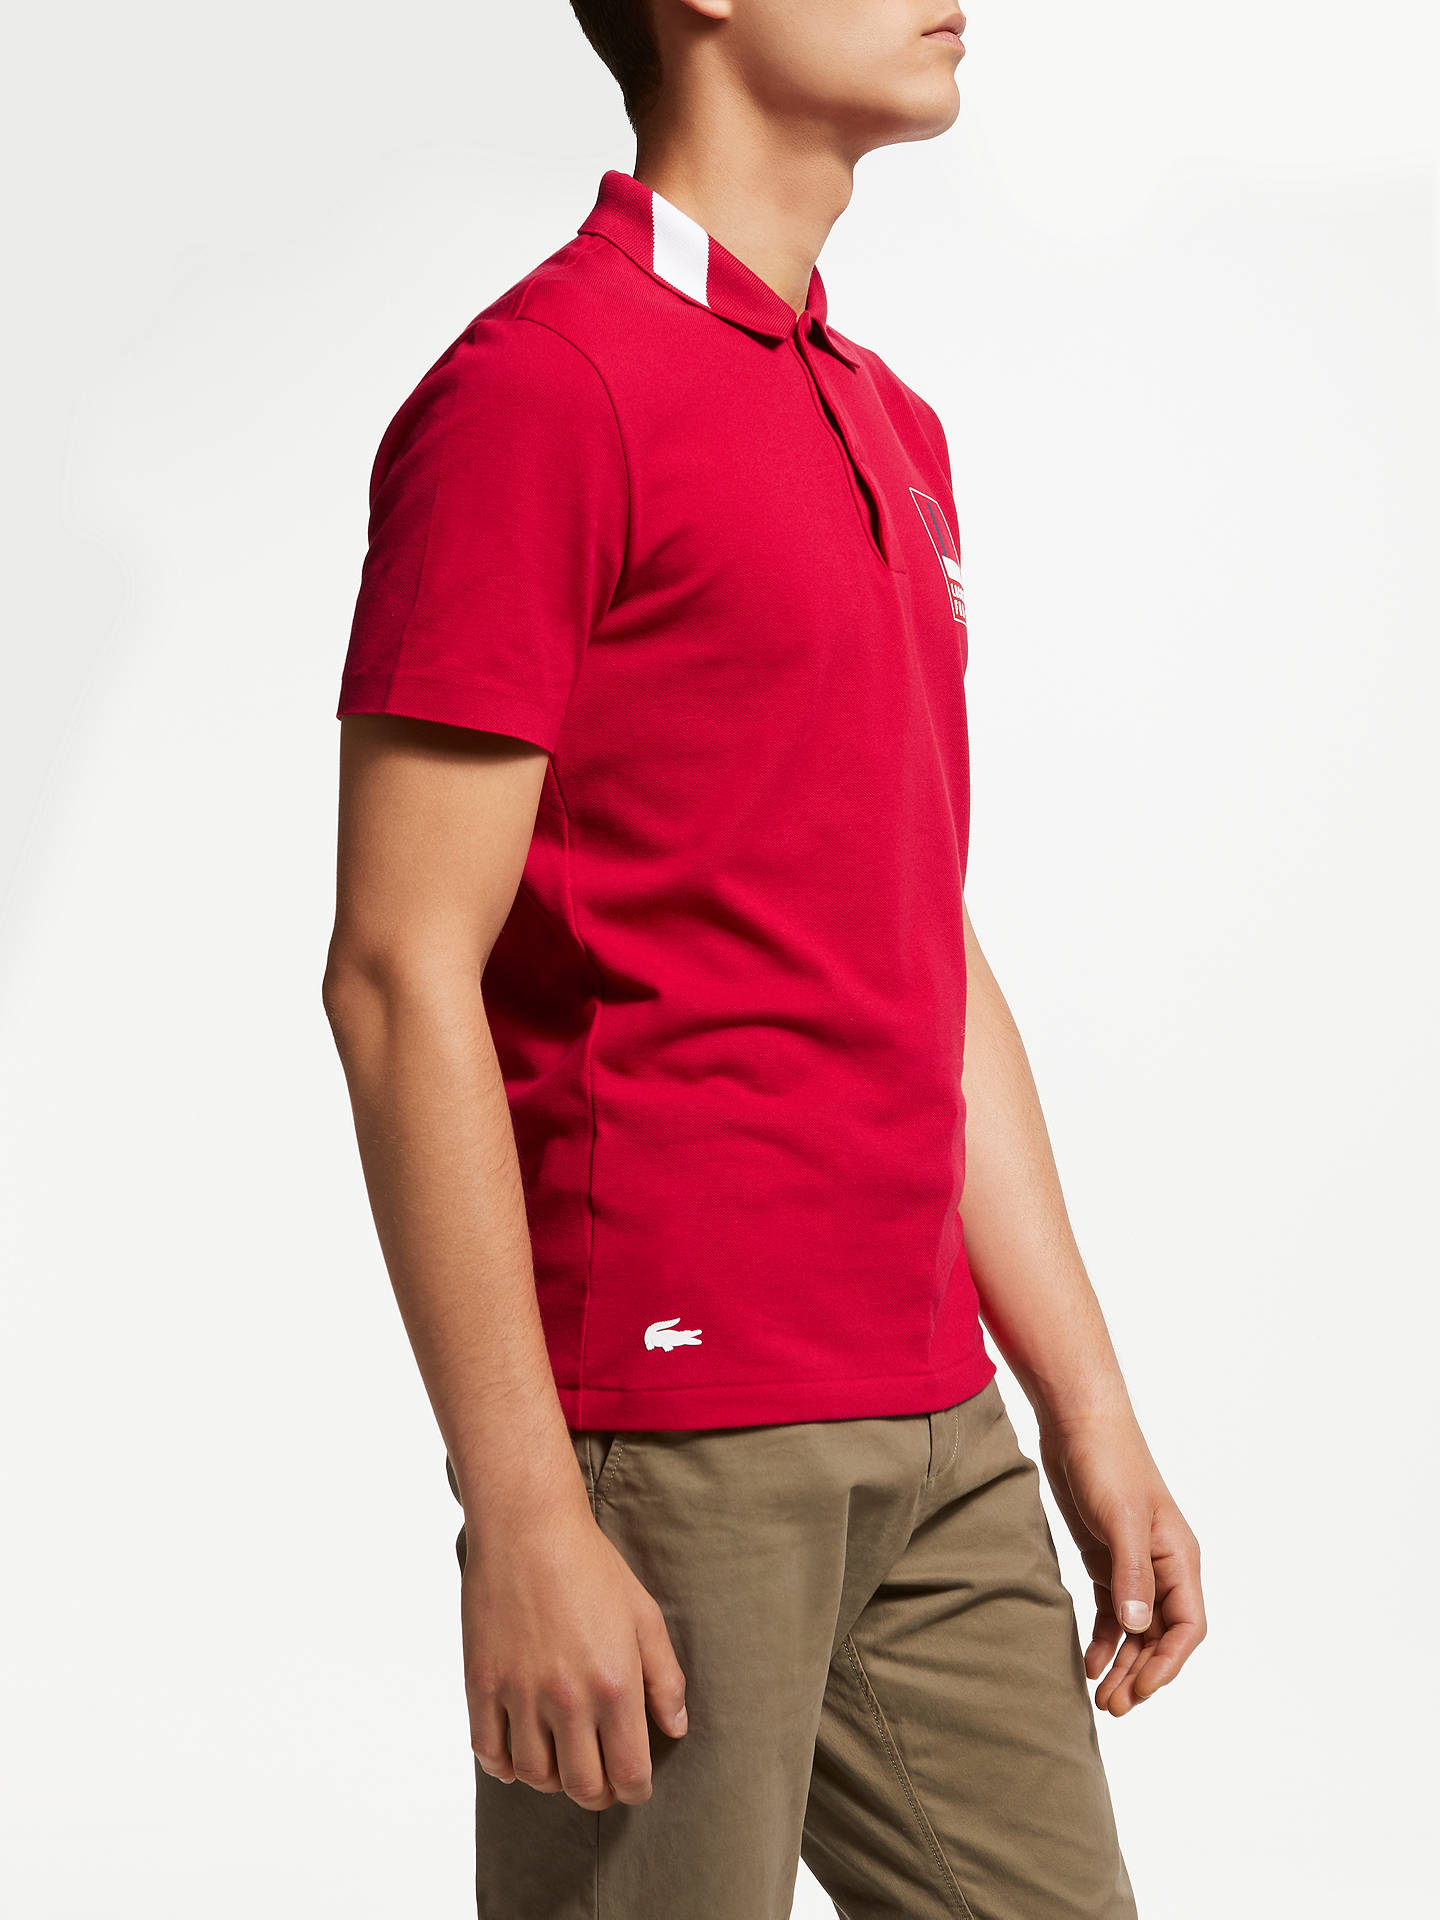 80faa819 Buy Lacoste Abstract Croc Short Sleeve Polo Shirt, Red, L Online at  johnlewis.